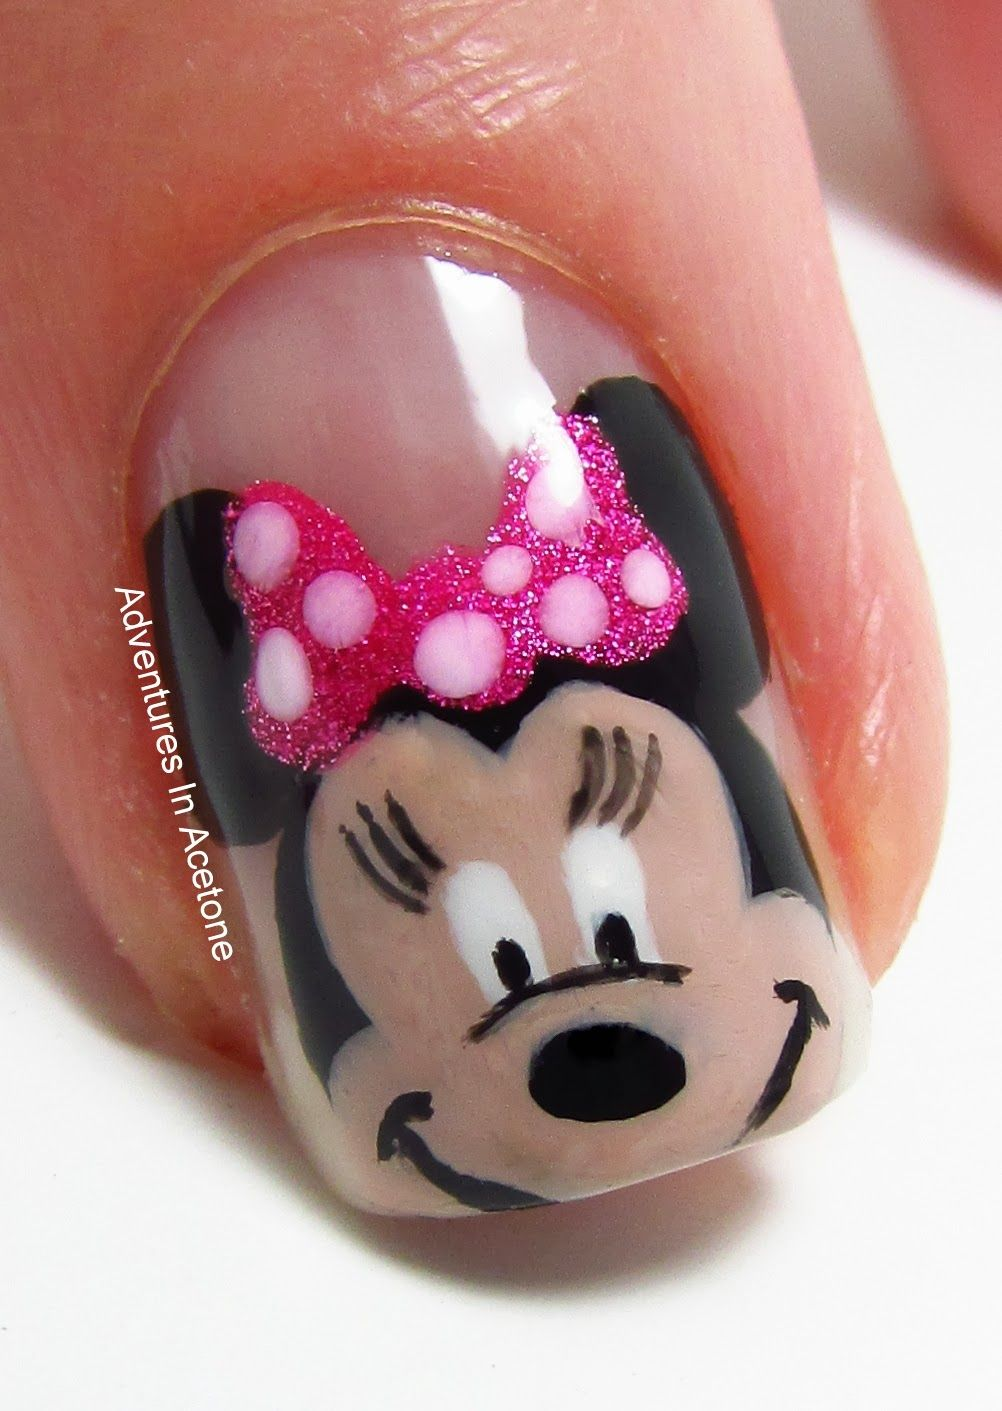 Disney Minnie Mouse Nail Art Cant Wait To Do For My Next Trip To